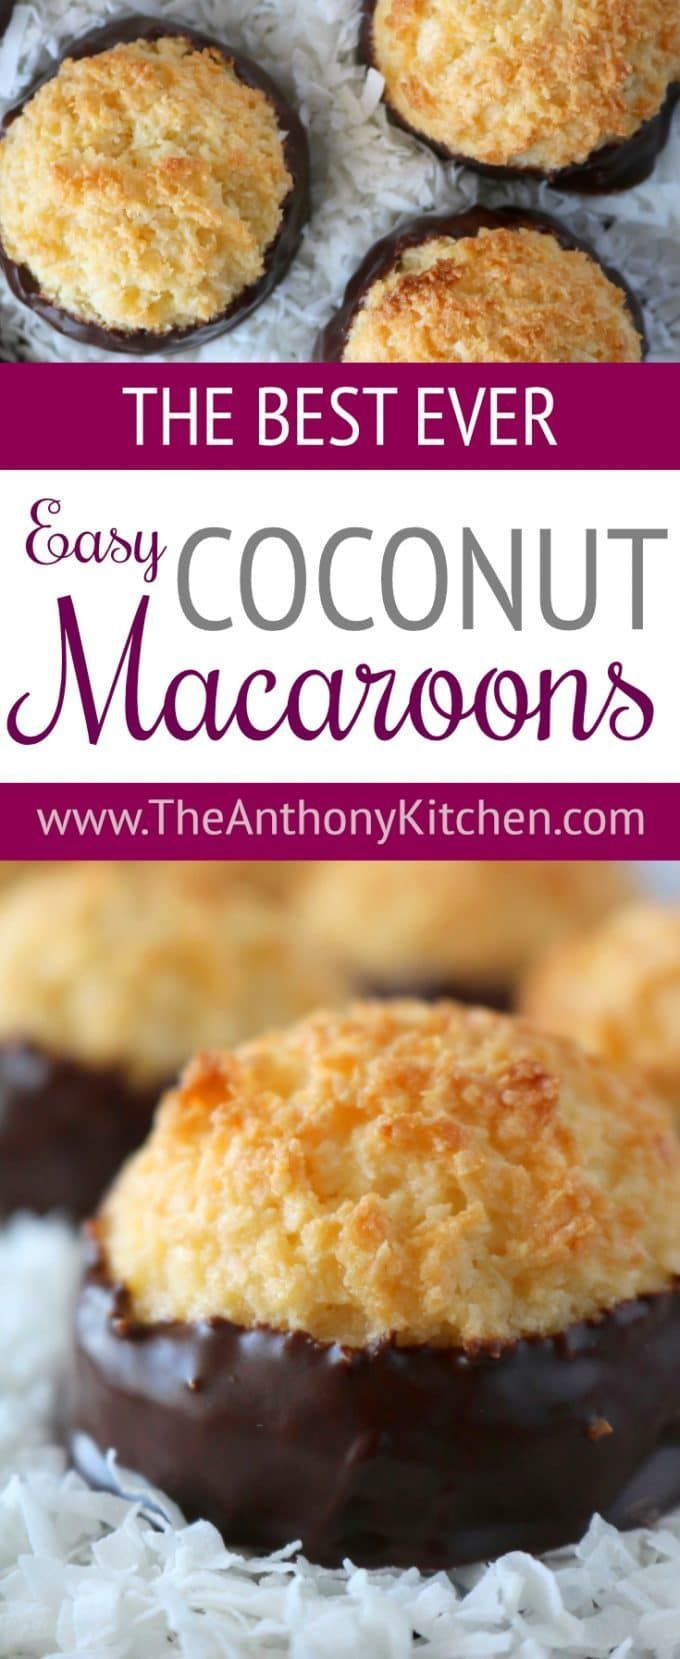 These Easy Homemade Coconut Macaroons Are So Simple To Make And